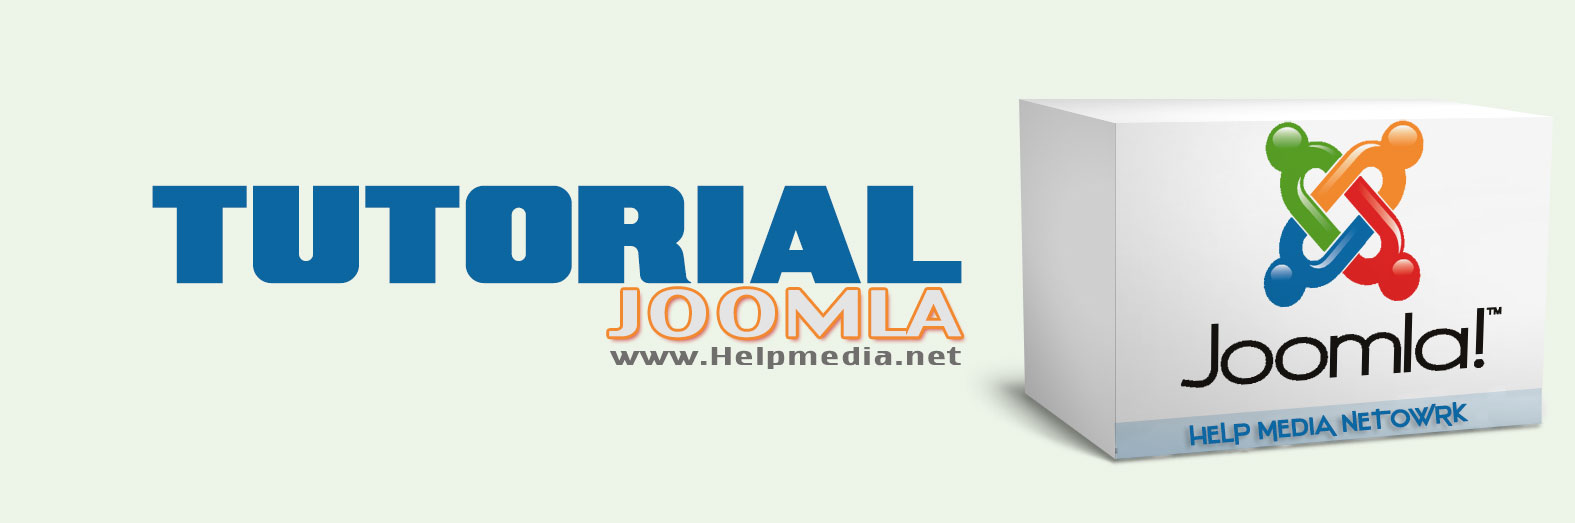 How to Build a Website Using Joomla CMS